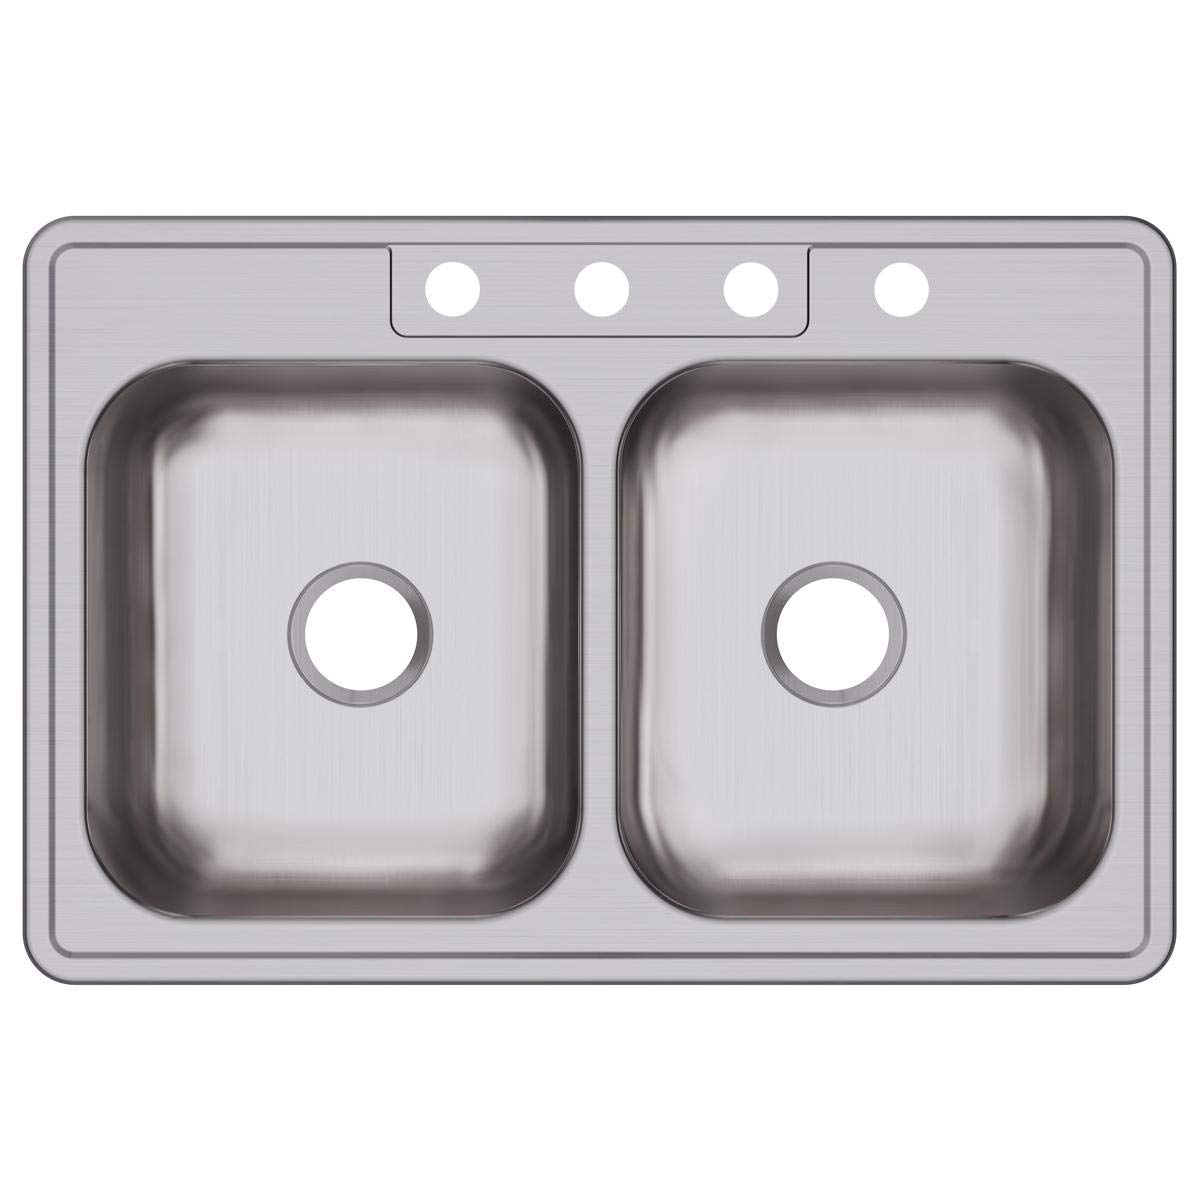 Elkay DXR33224 Dayton Equal Double Bowl Drop-in Stainless Steel Sink